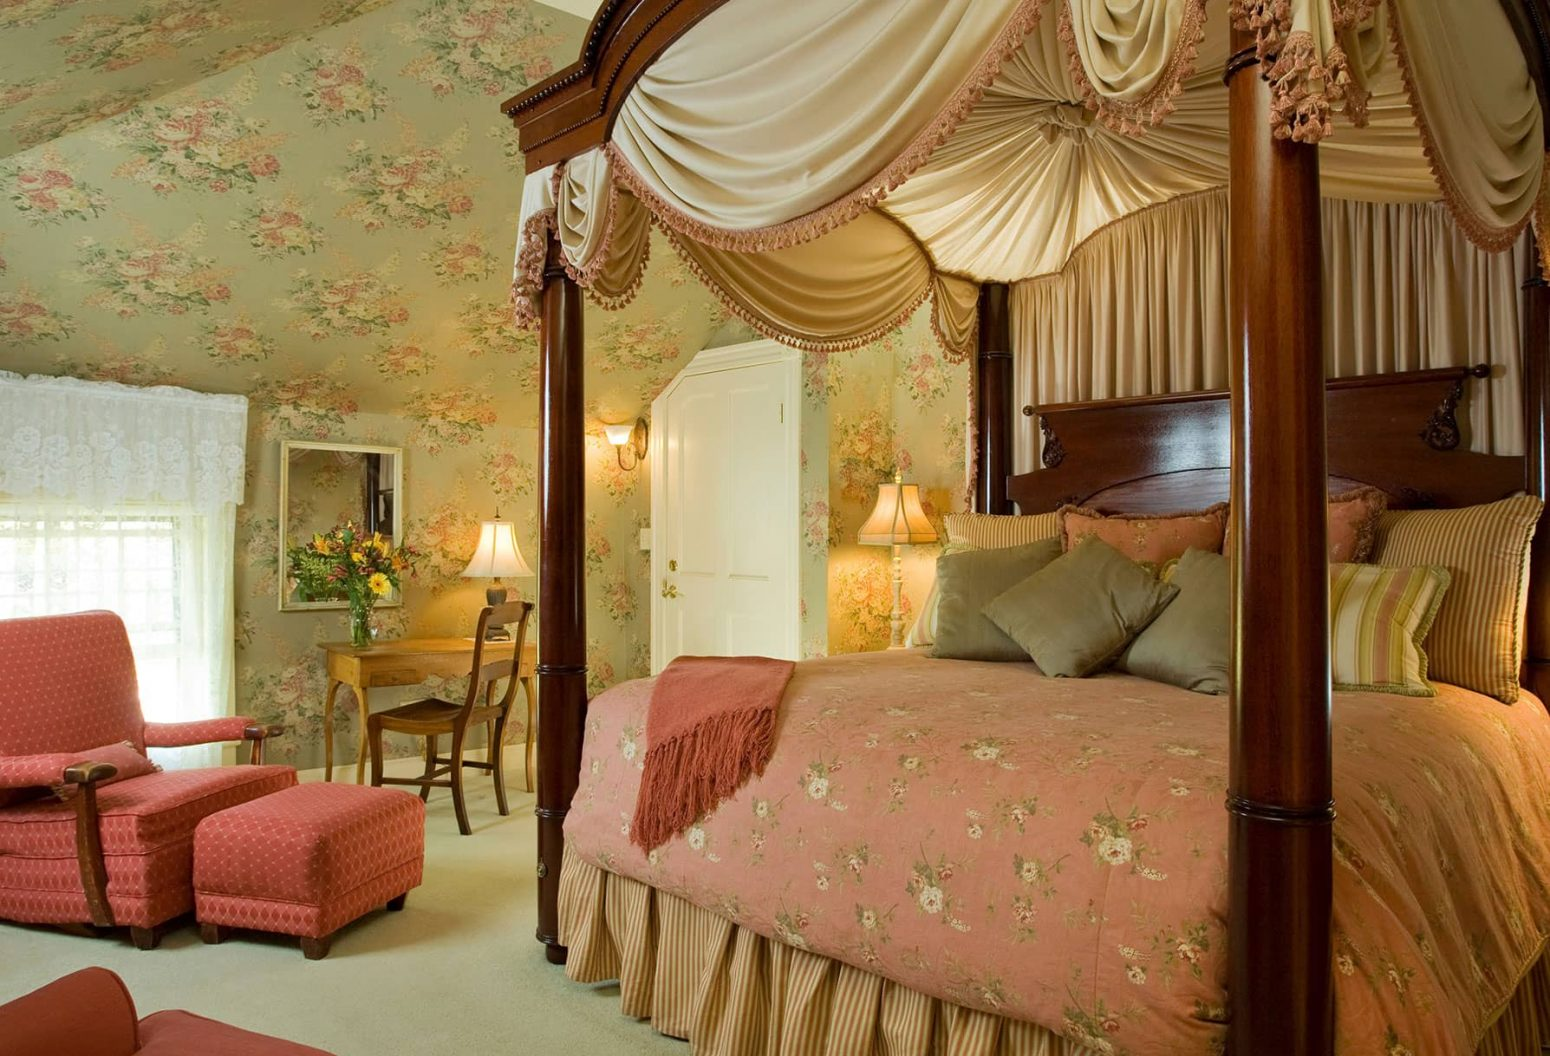 Tall, luxurious Four-poster bed by comfortable sitting area in Room 12